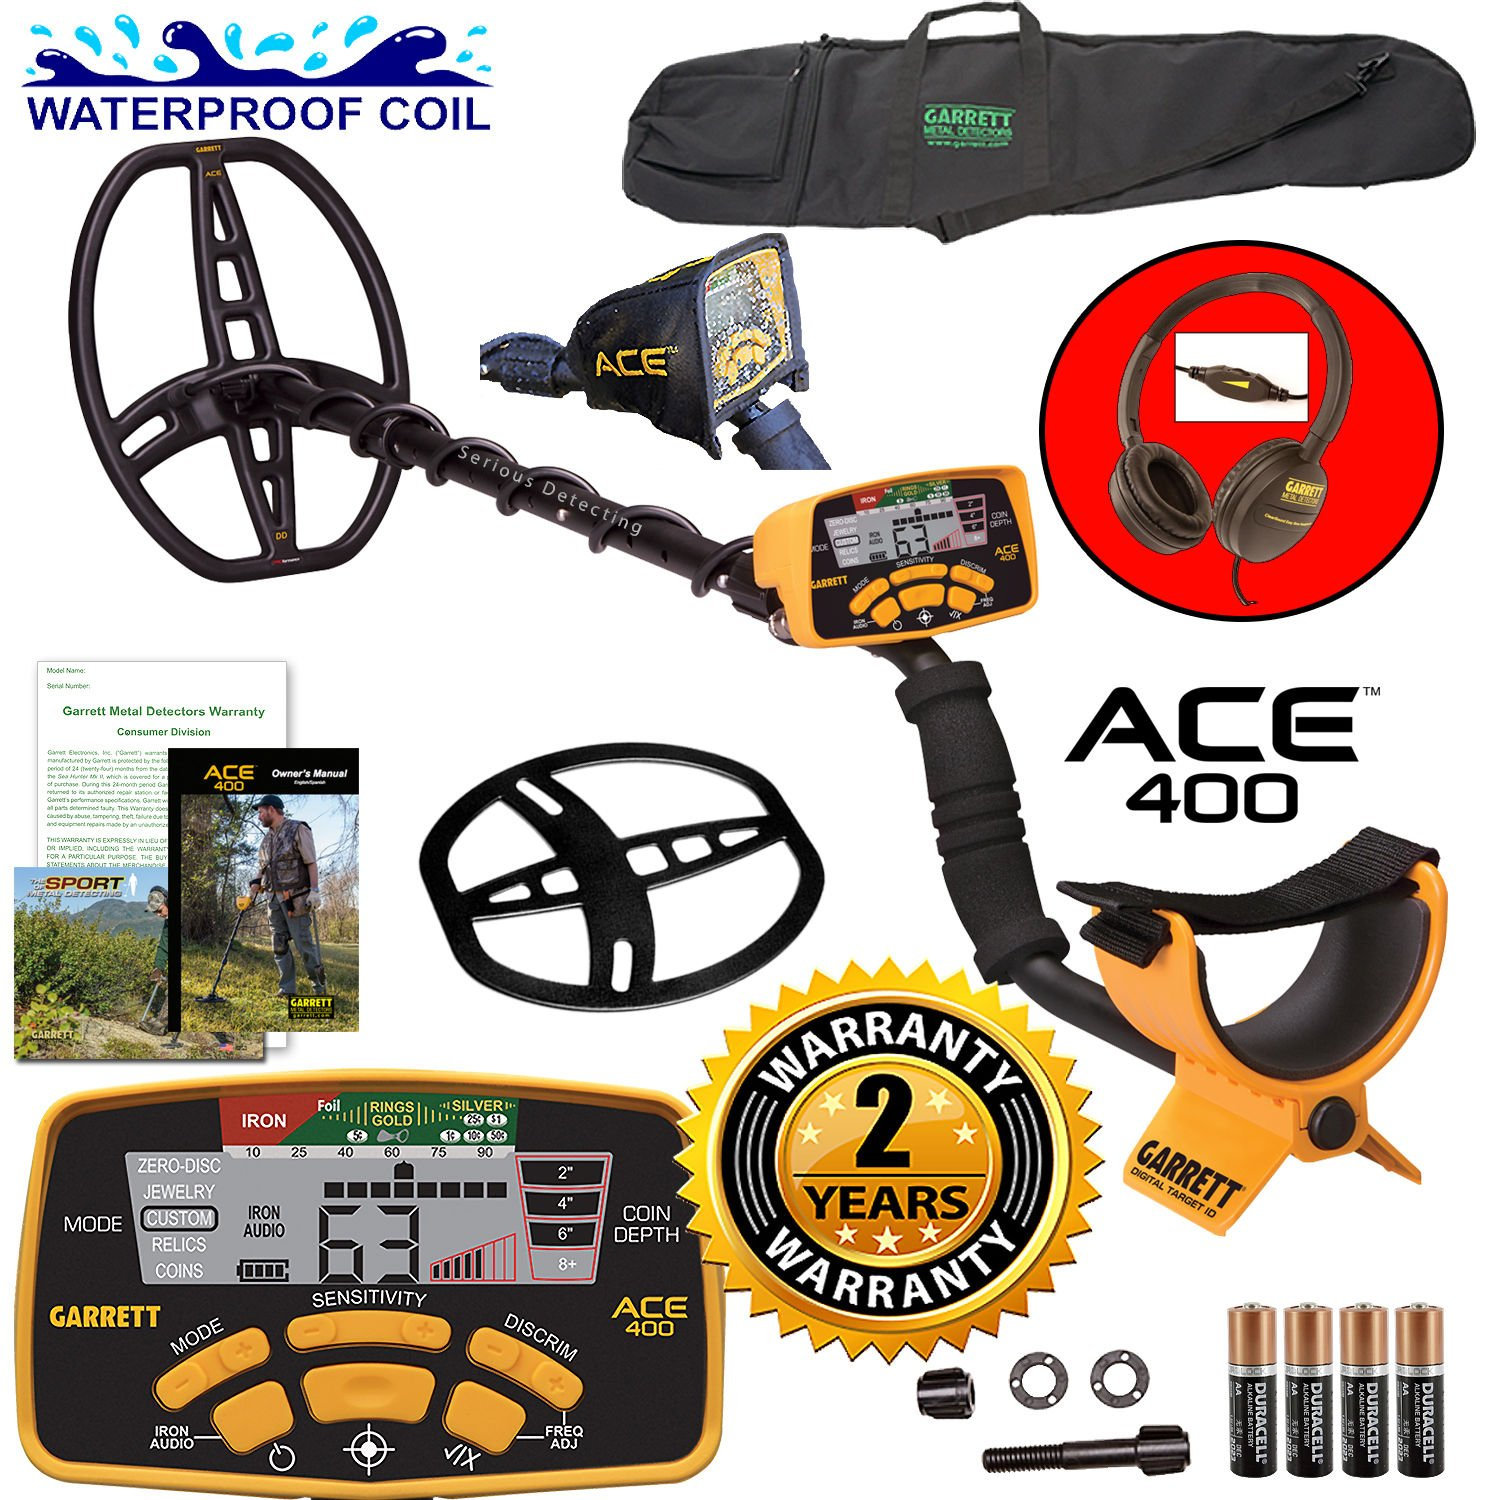 Garrett ACE 400 Metal Detector with DD Waterproof Search Coil and Carry Bag by Garrett Electronics